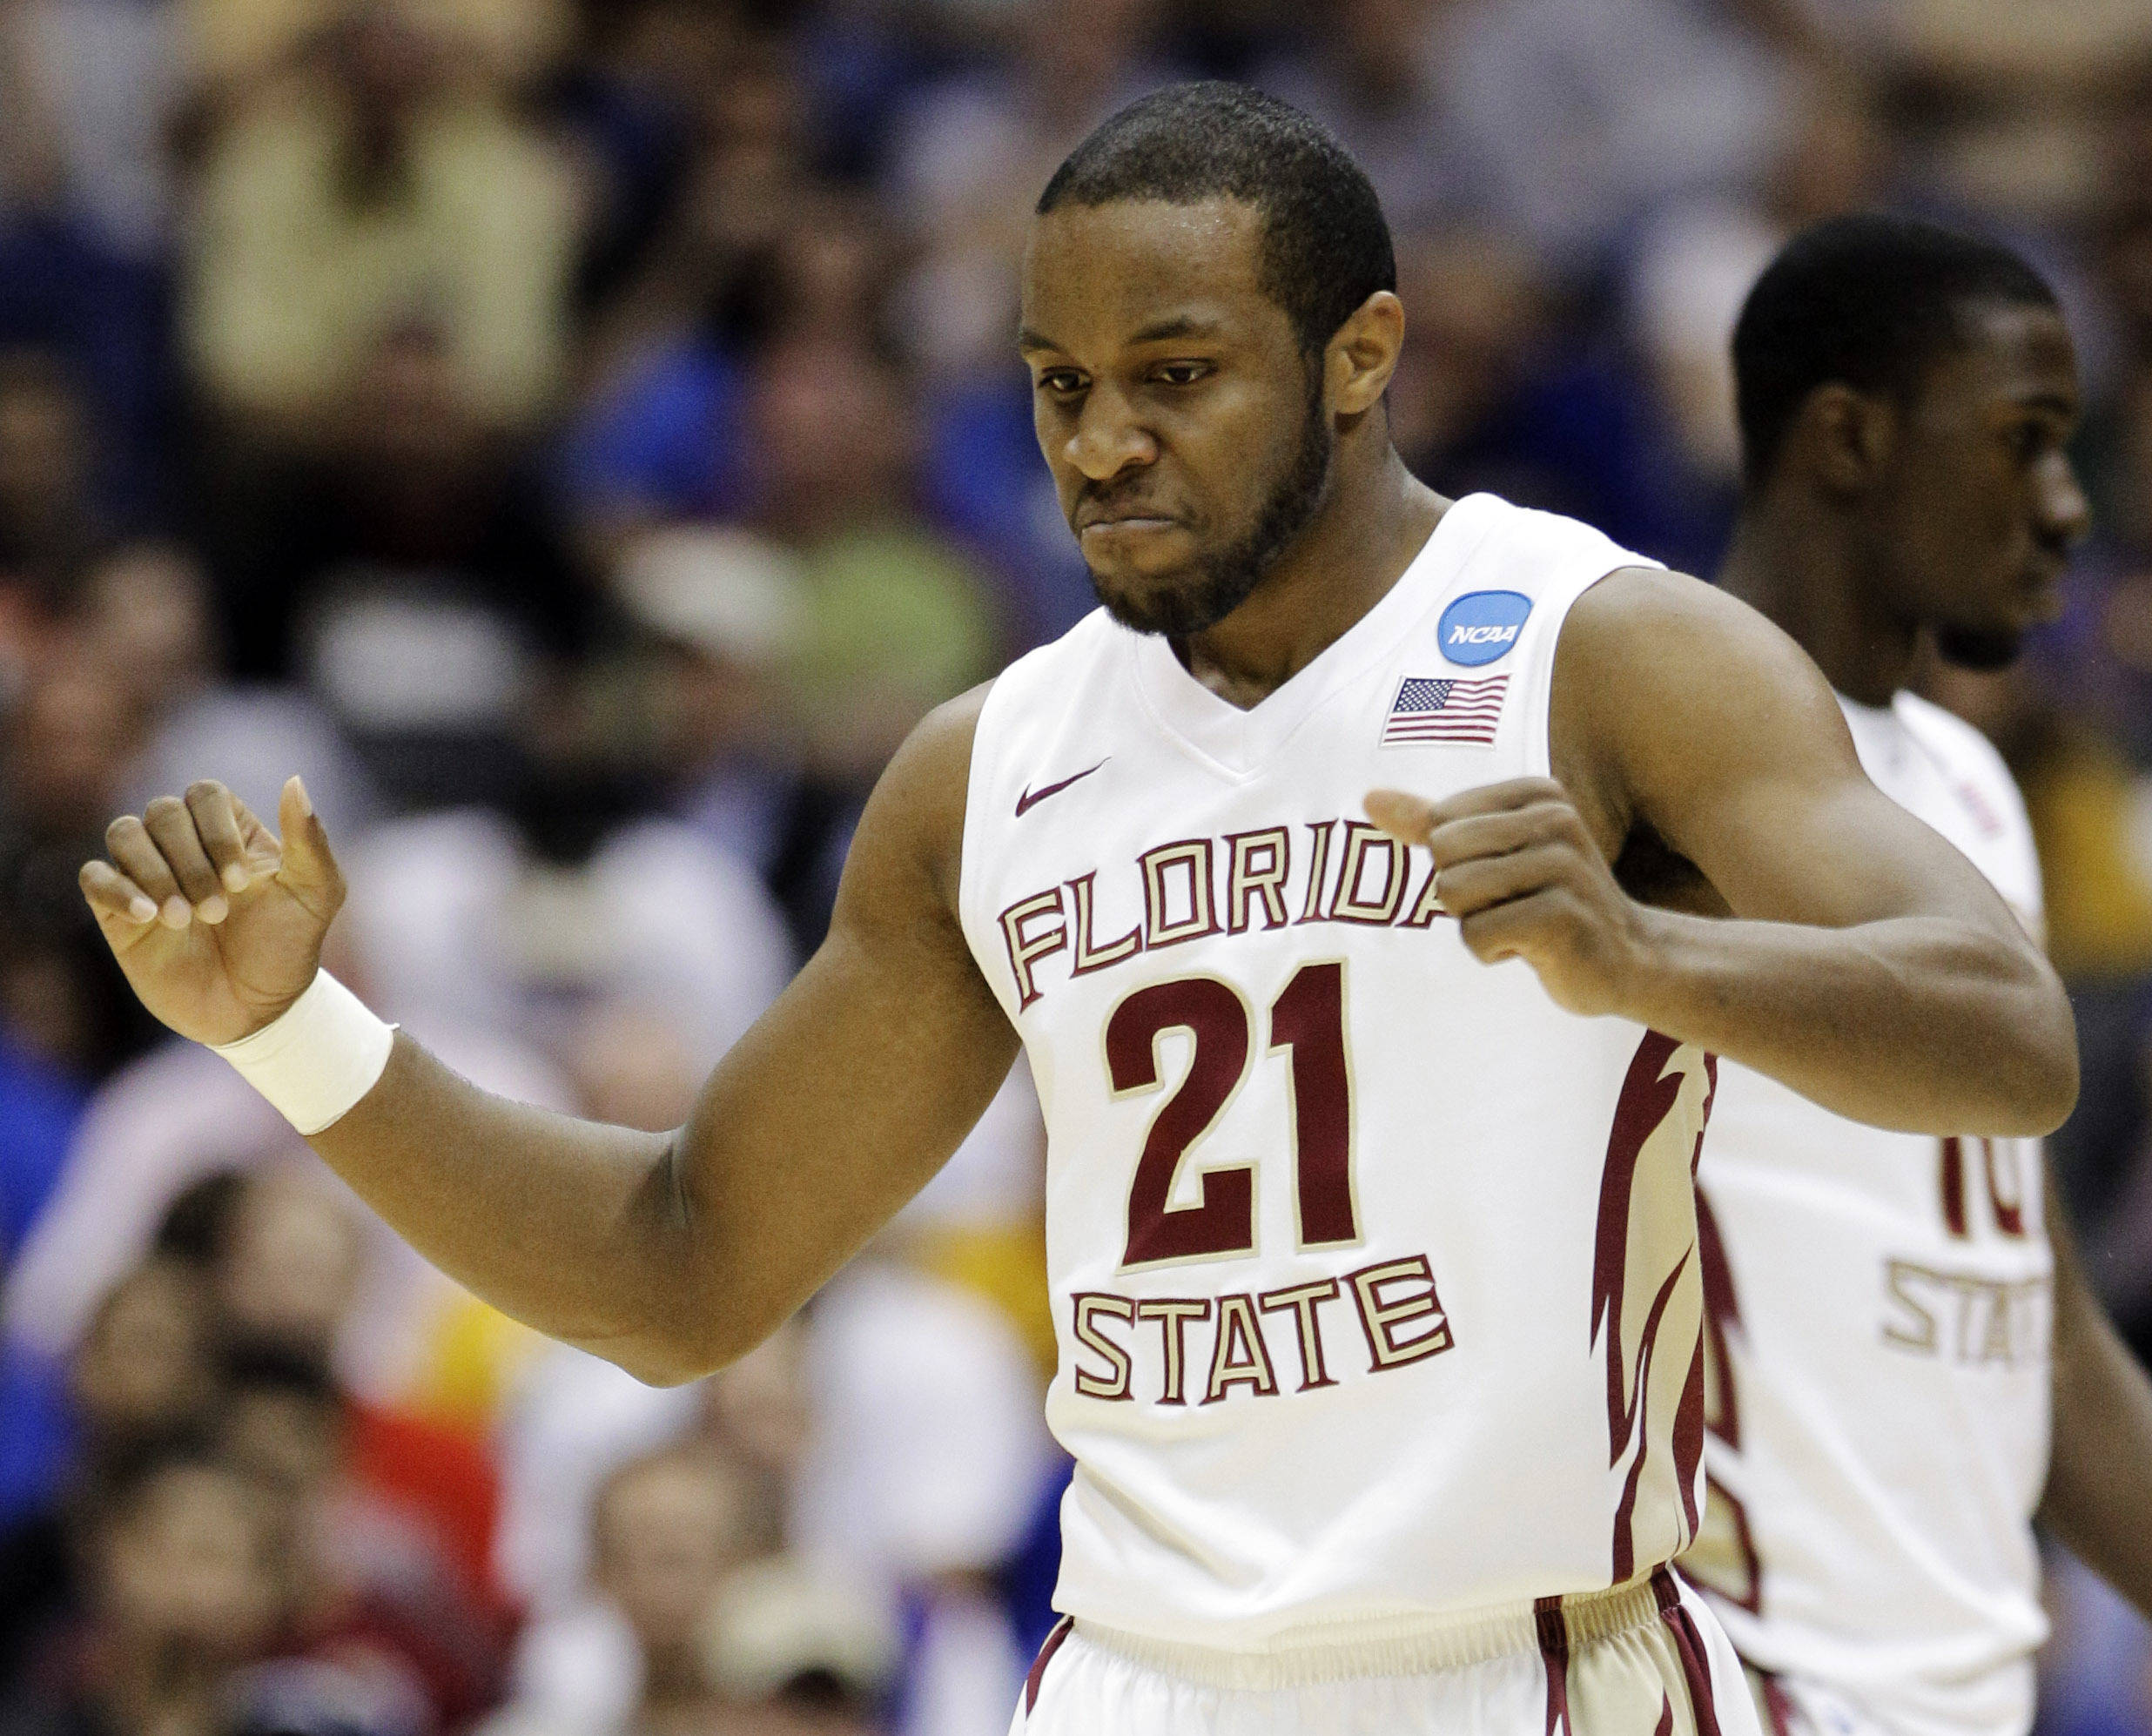 Florida State's Michael Snaer reacts to action against the Virginia Commonwealth during the first half of a Southwest regional semifinal game. (AP Photo/Tony Gutierrez)